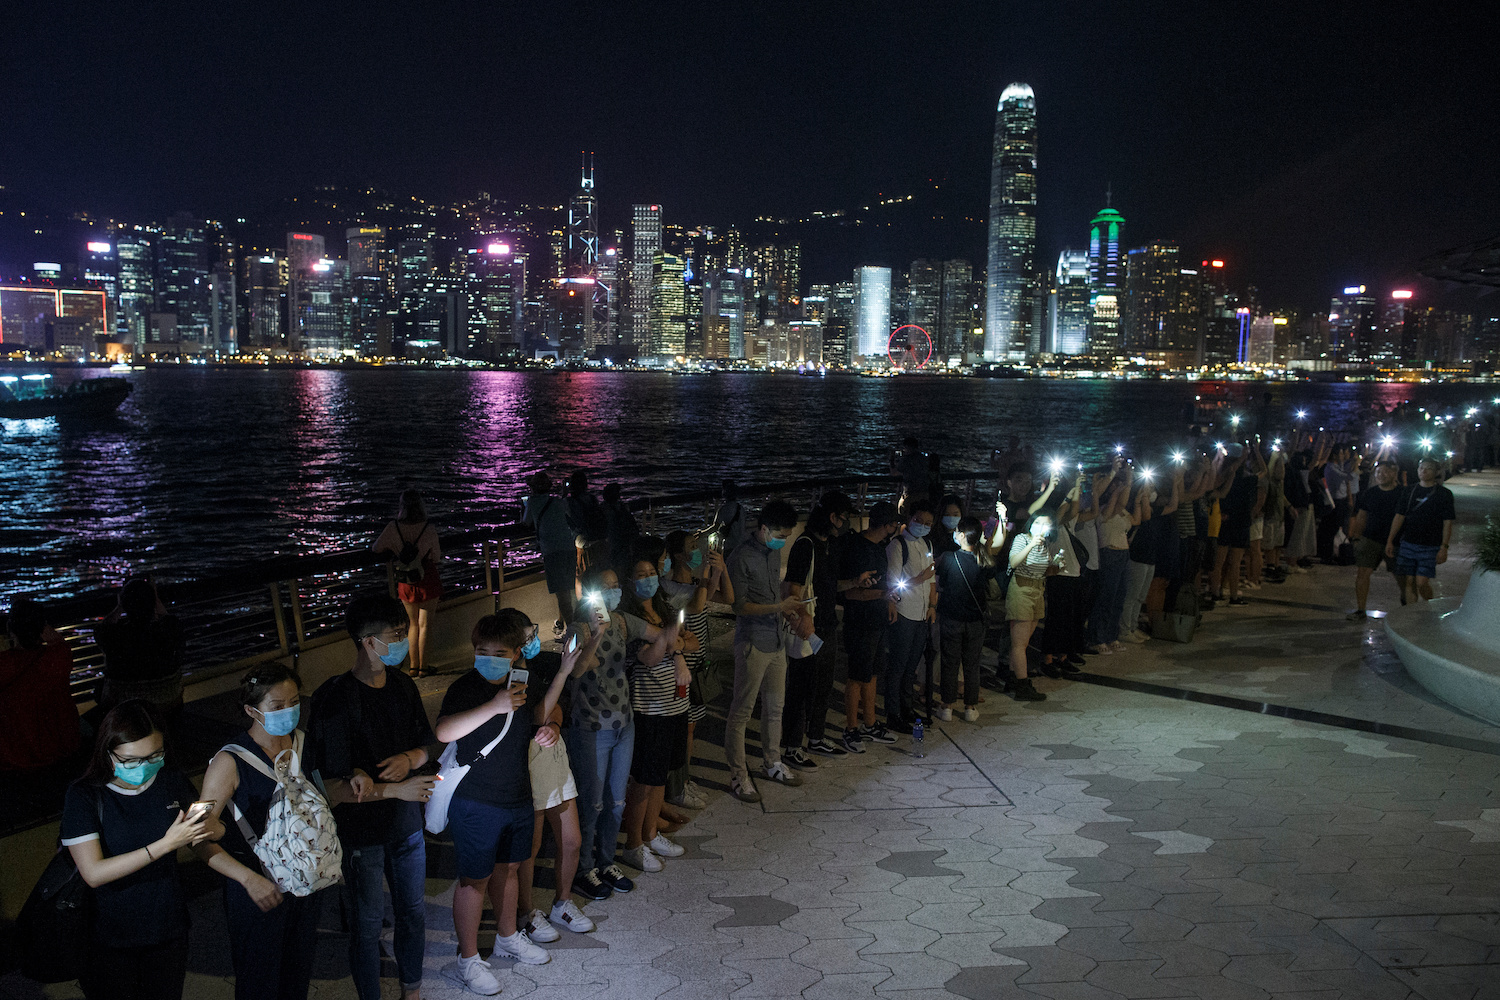 Protesters hold hands to form a human chain during a rally to call for political reforms at the Avenue of Stars in Hong Kong on Friday night. (Reuters Photo)